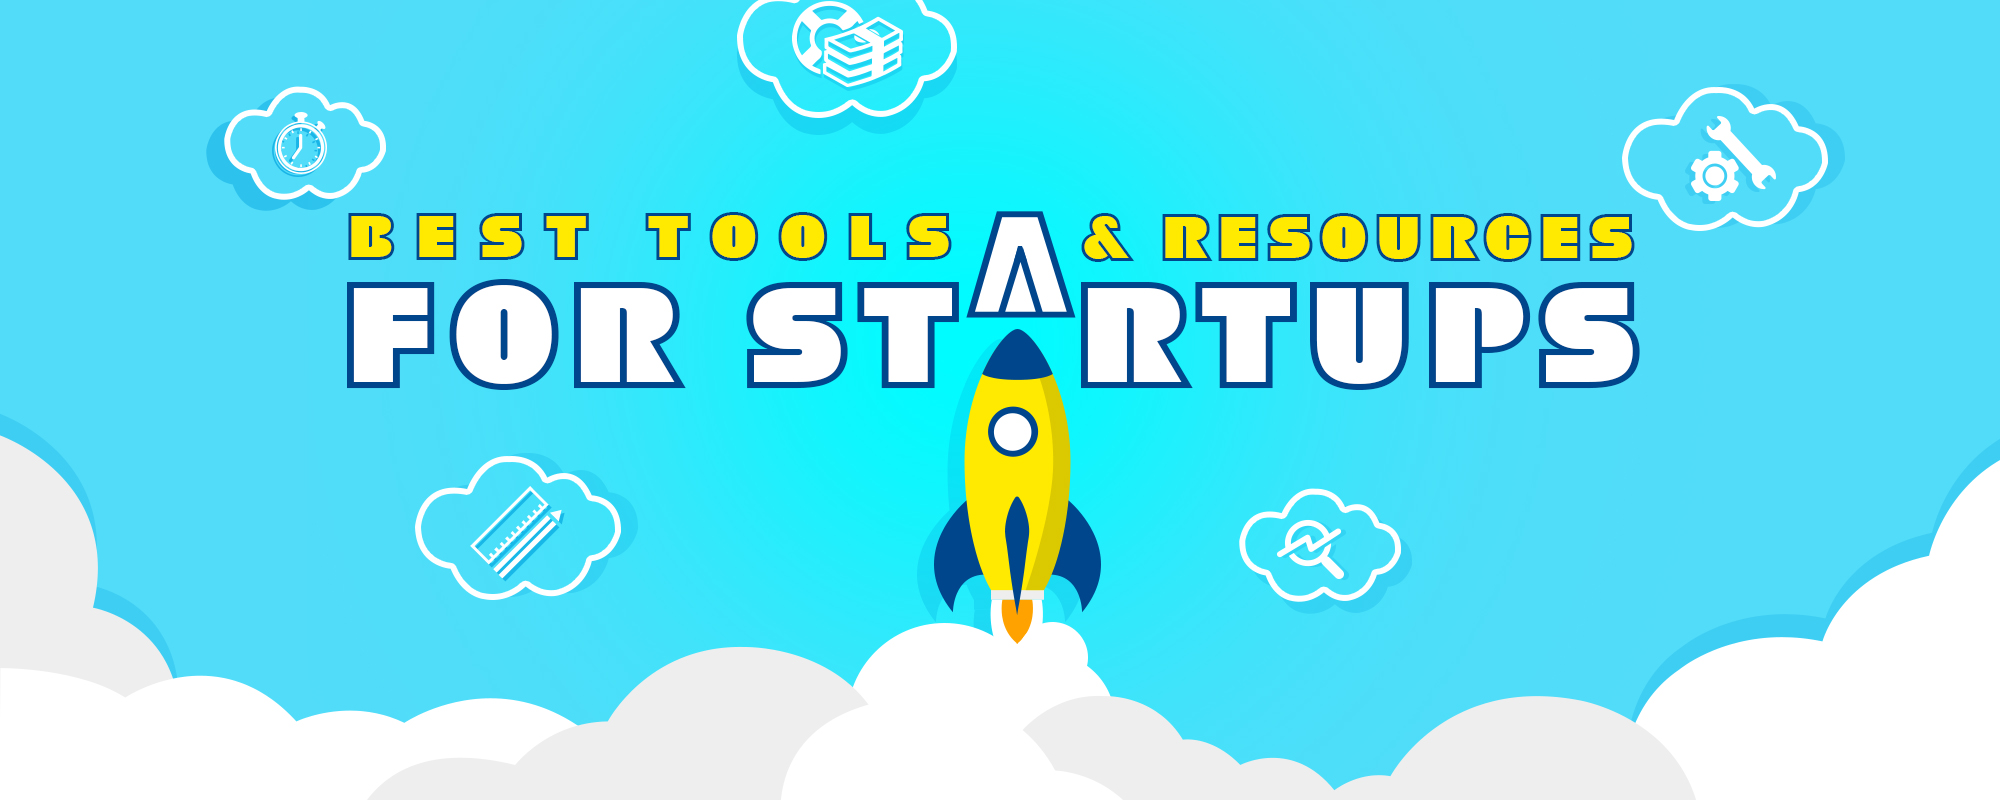 20 Useful Tools & Resources to Make Your Startup Smarter in 2020